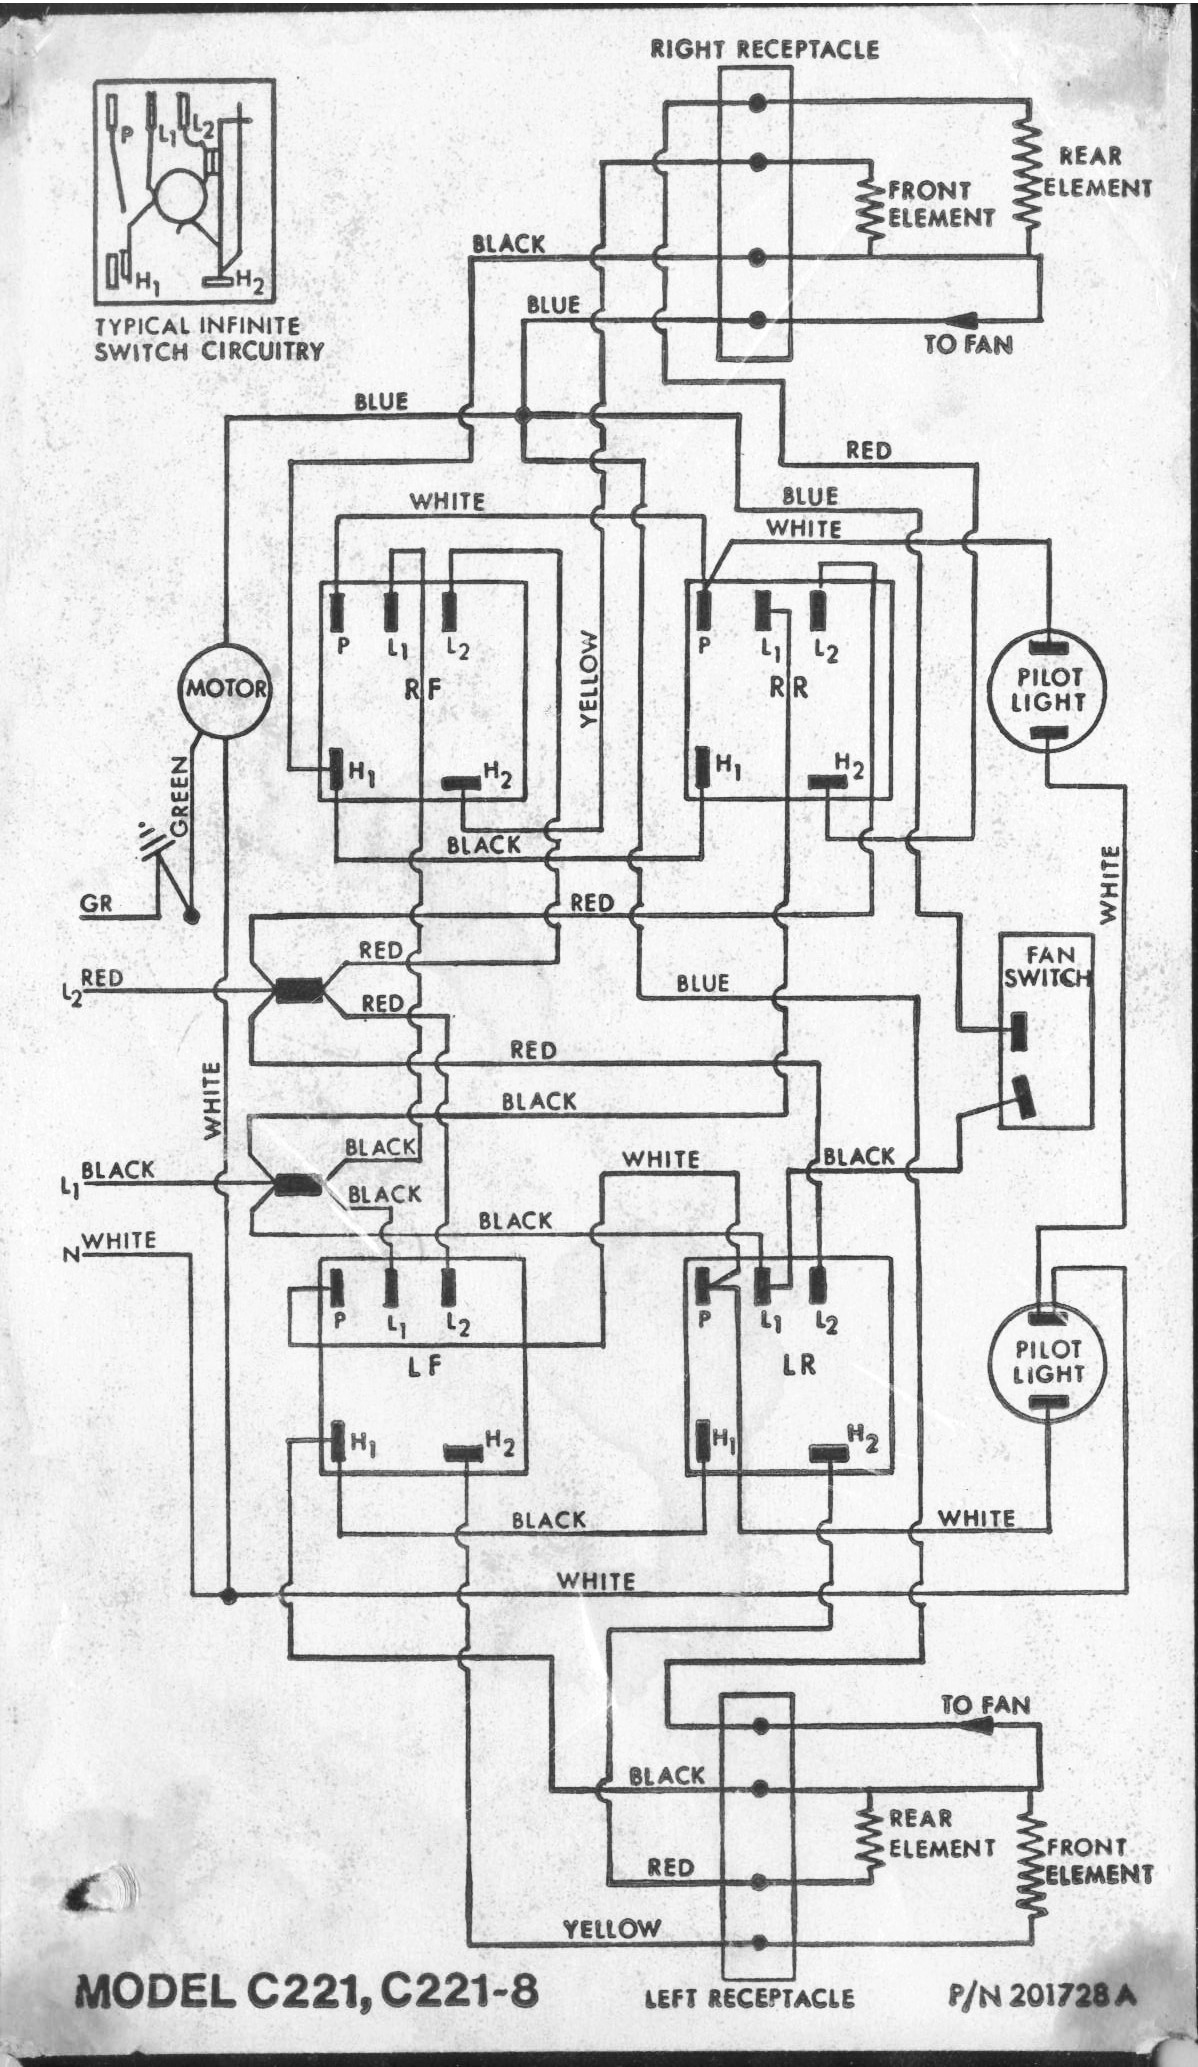 wiring diagram for oven element